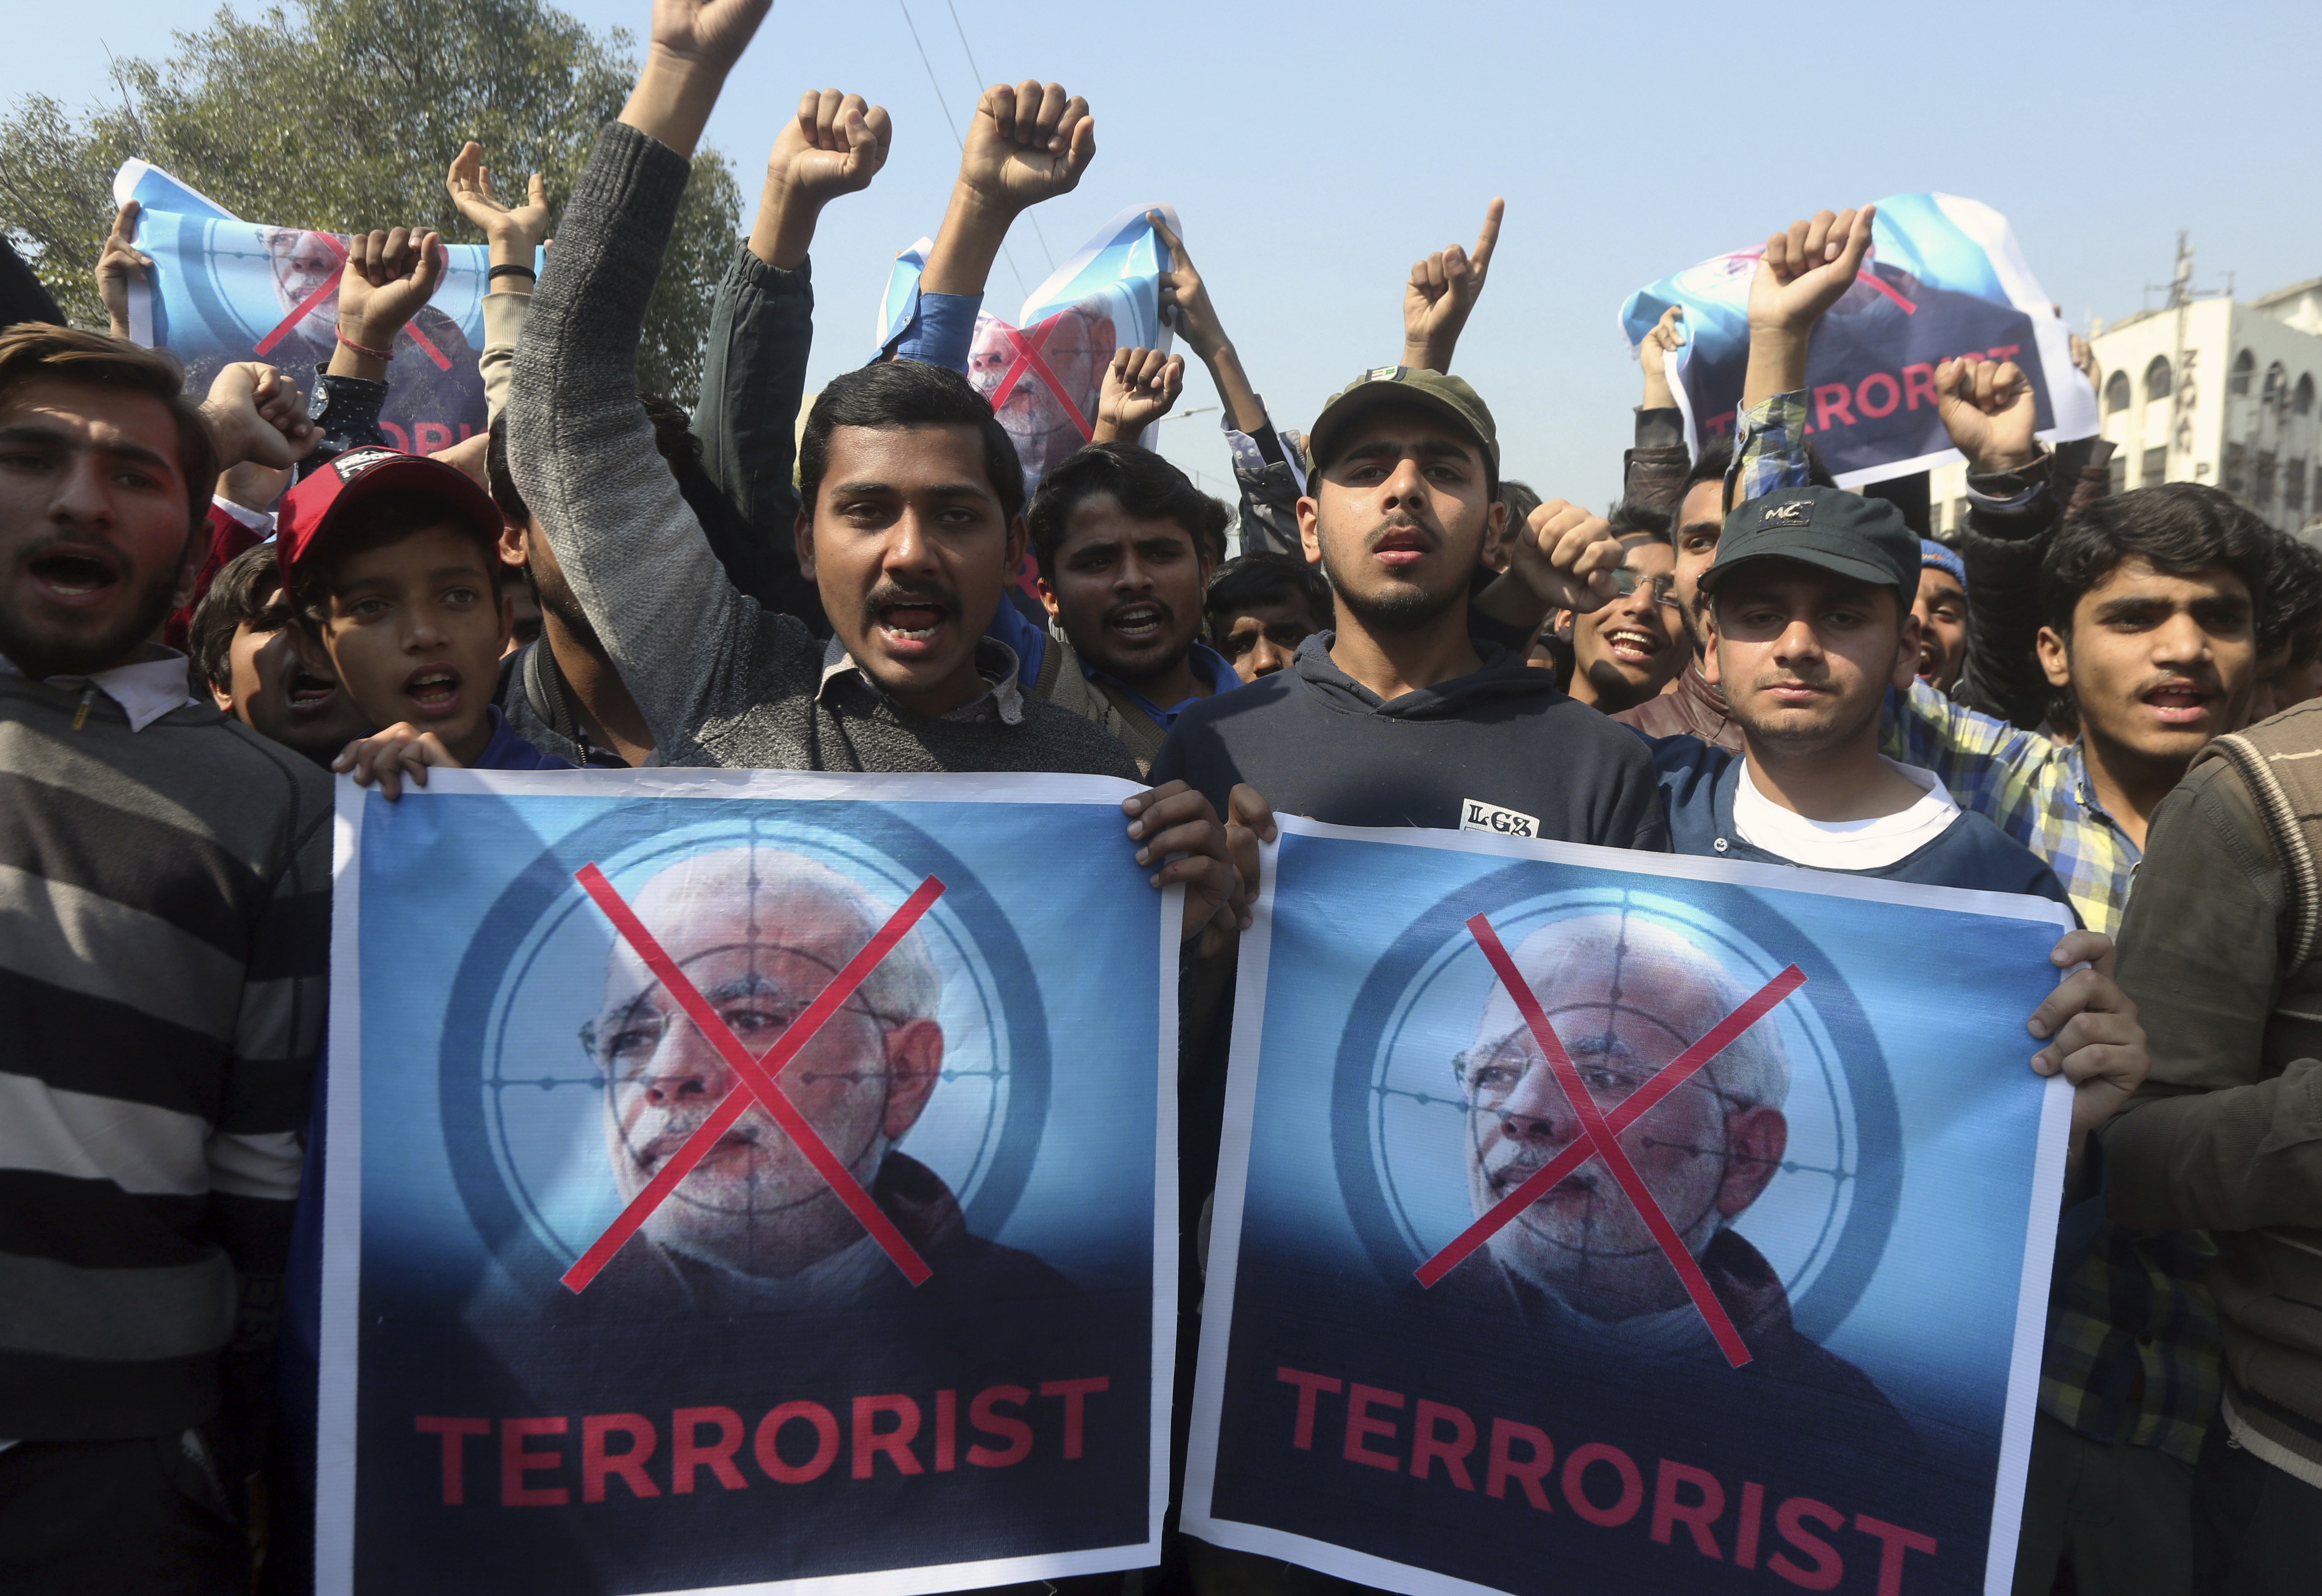 Supporters of a Pakistani religious group Islami Jamiat-e-Talaba chant slogans at a rally to condemn Indian aggression, Wednesday, Feb. 27, 2019. Pakistan's air force shot down two Indian warplanes after they crossed the boundary between the two nuclear-armed rivals in the disputed territory of Kashmir on Wednesday and captured one Indian pilot, a military spokesman said. (AP Photo/K.M. Chaudary)